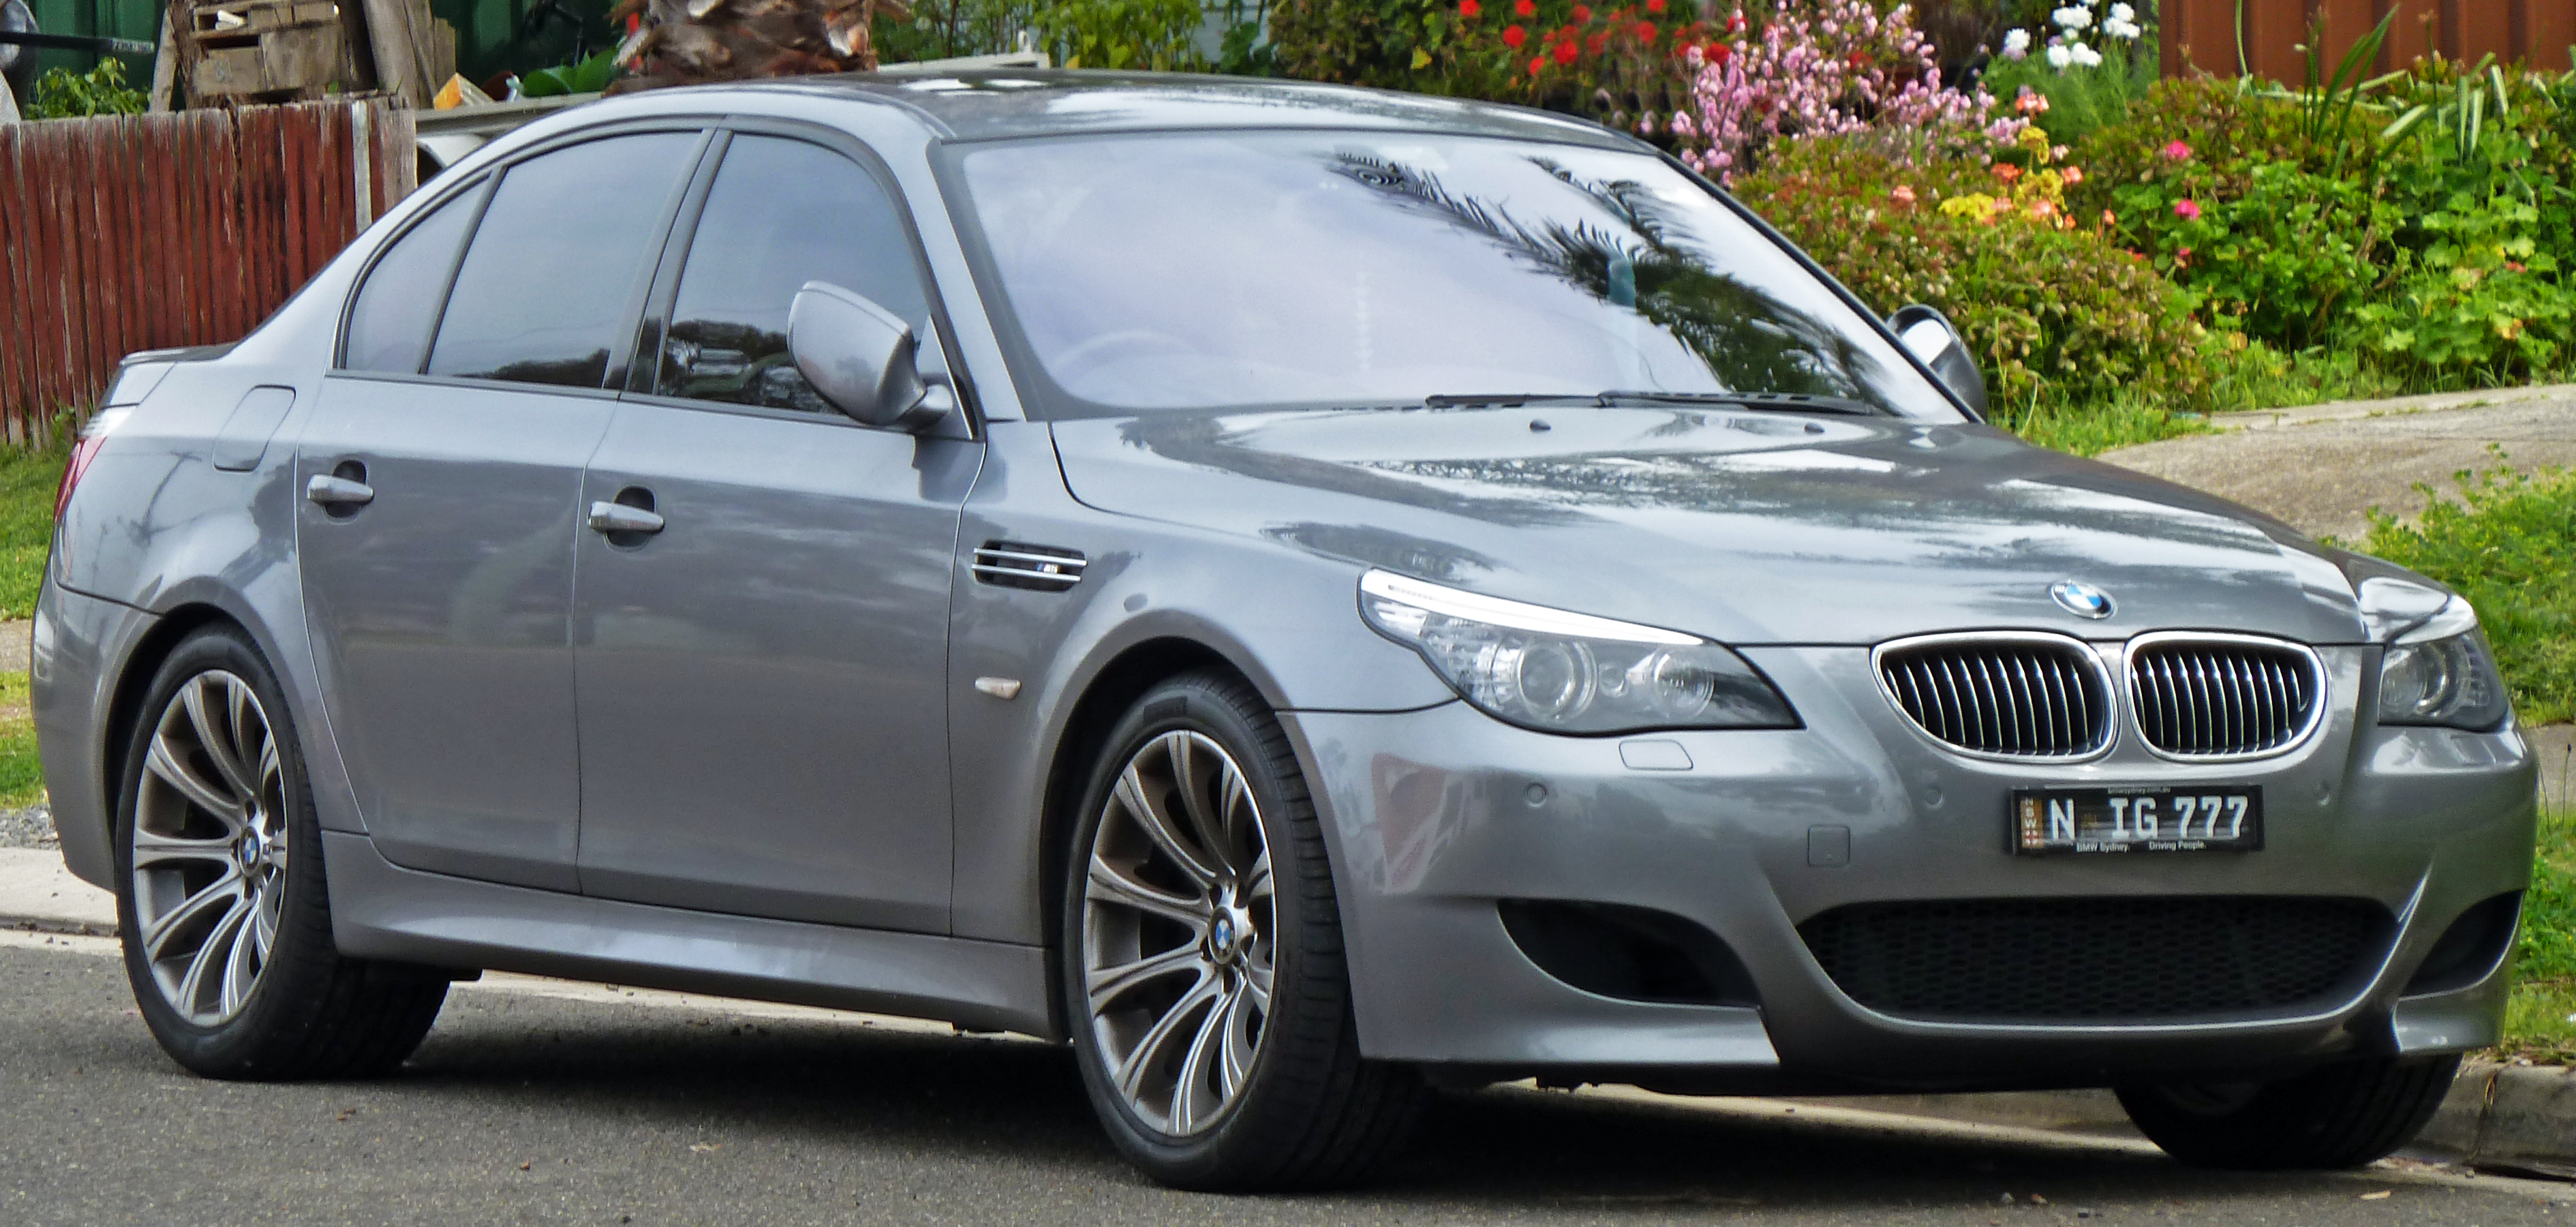 BMW 5 Series 2010 Exterior Side View